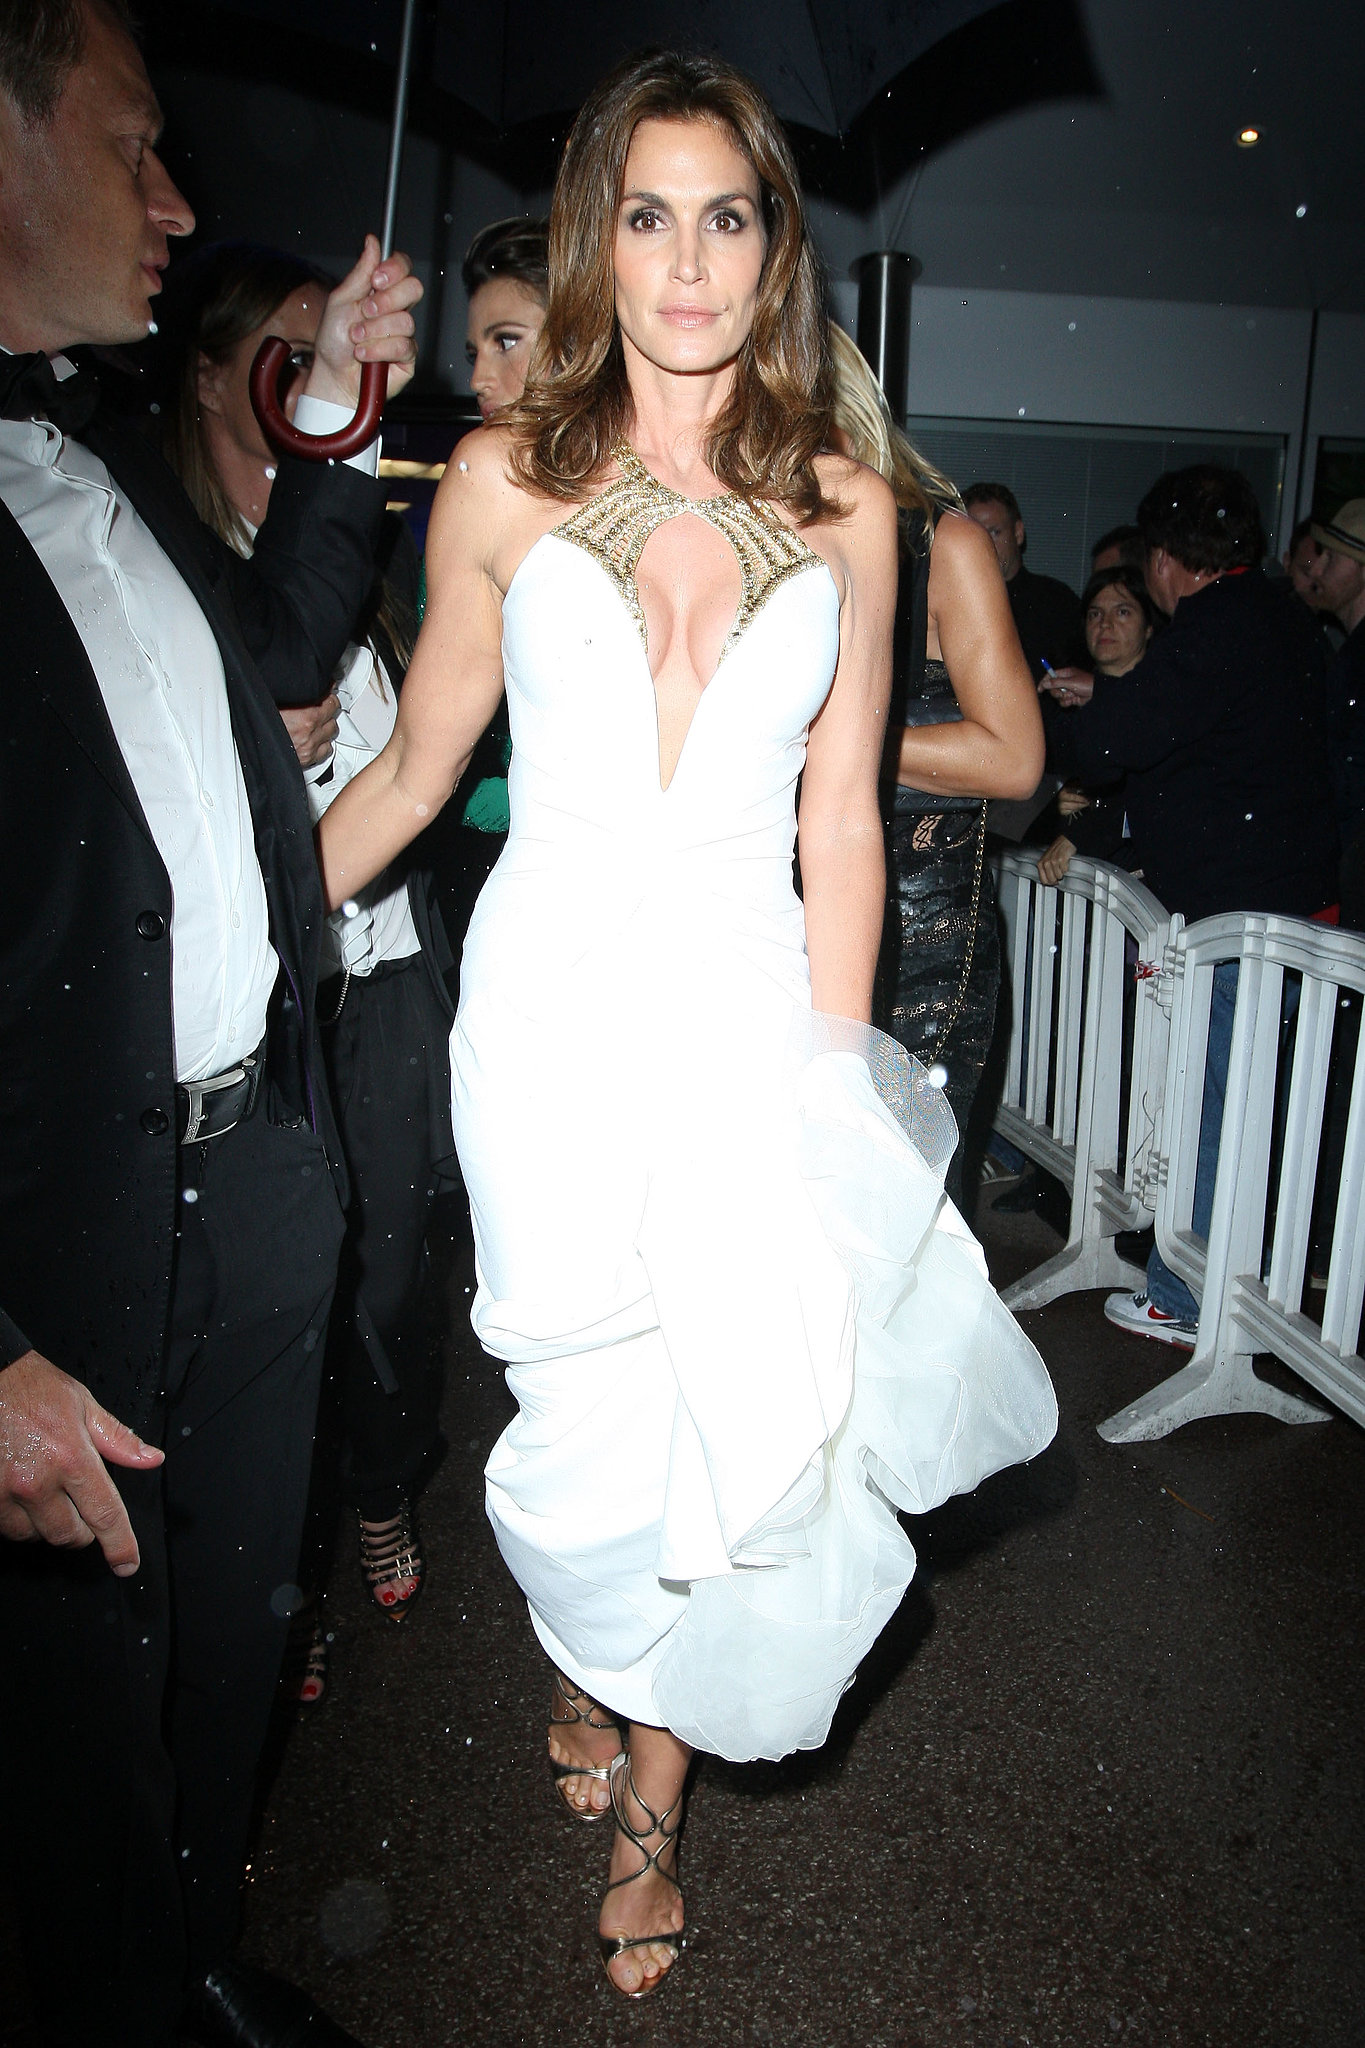 Cindy Crawford brought sexy to the Great Gatsby premiere in Cannes in a white Roberto Cavalli cutout gown with a contrasting gold neckline.